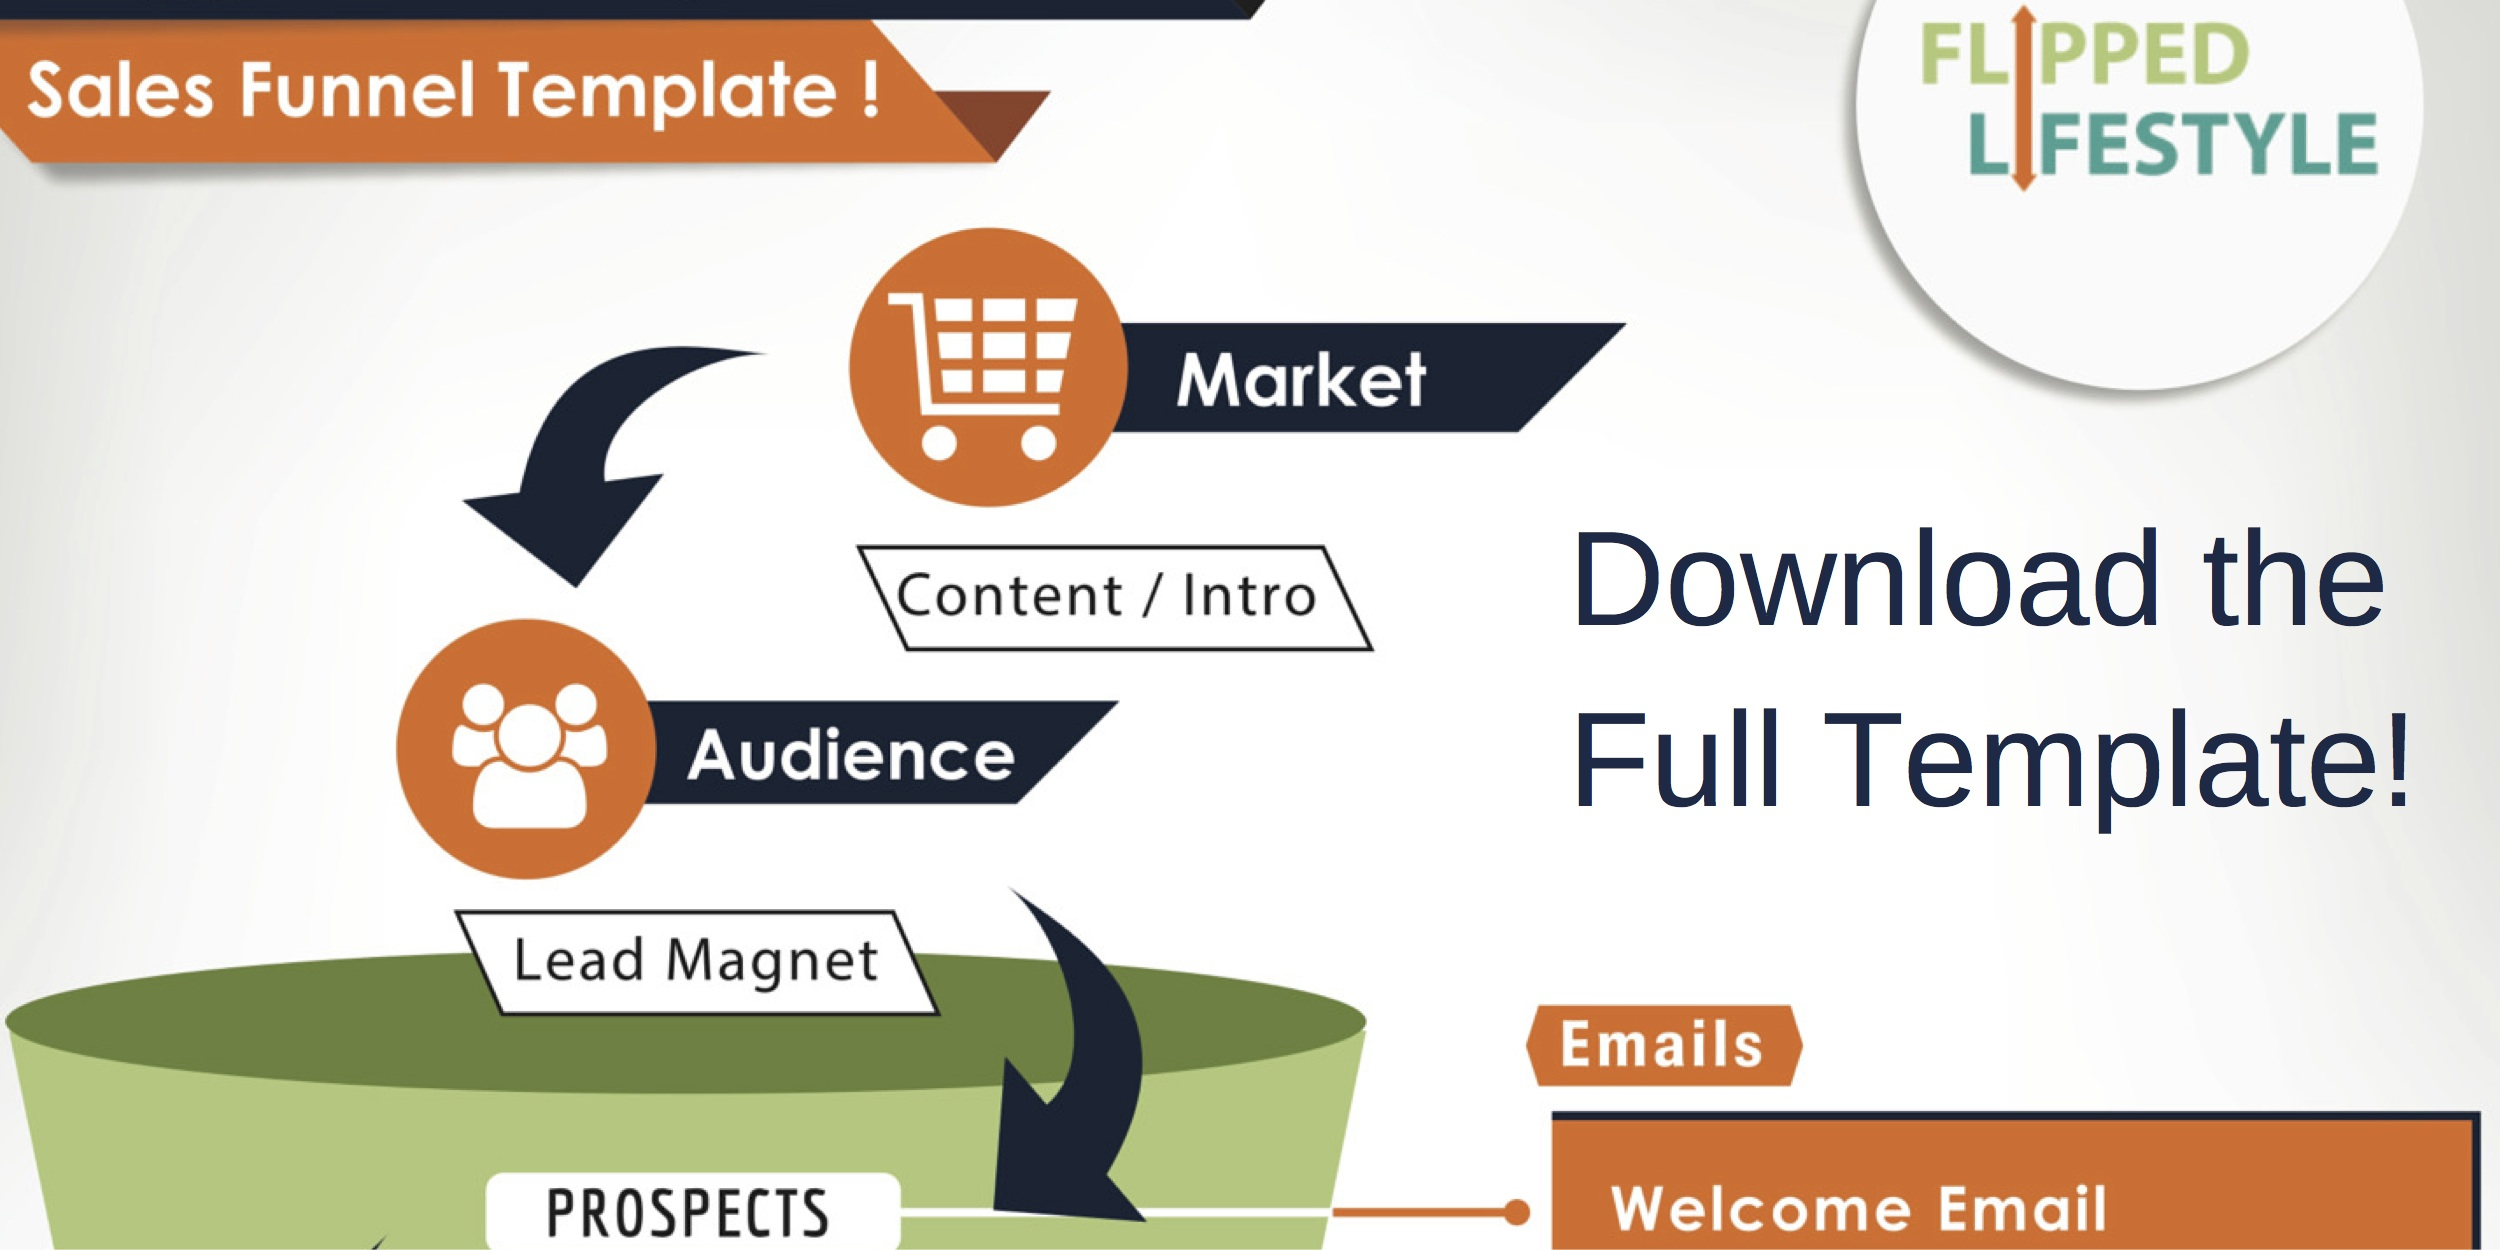 fl 44 how to create a sales funnel template for your online business